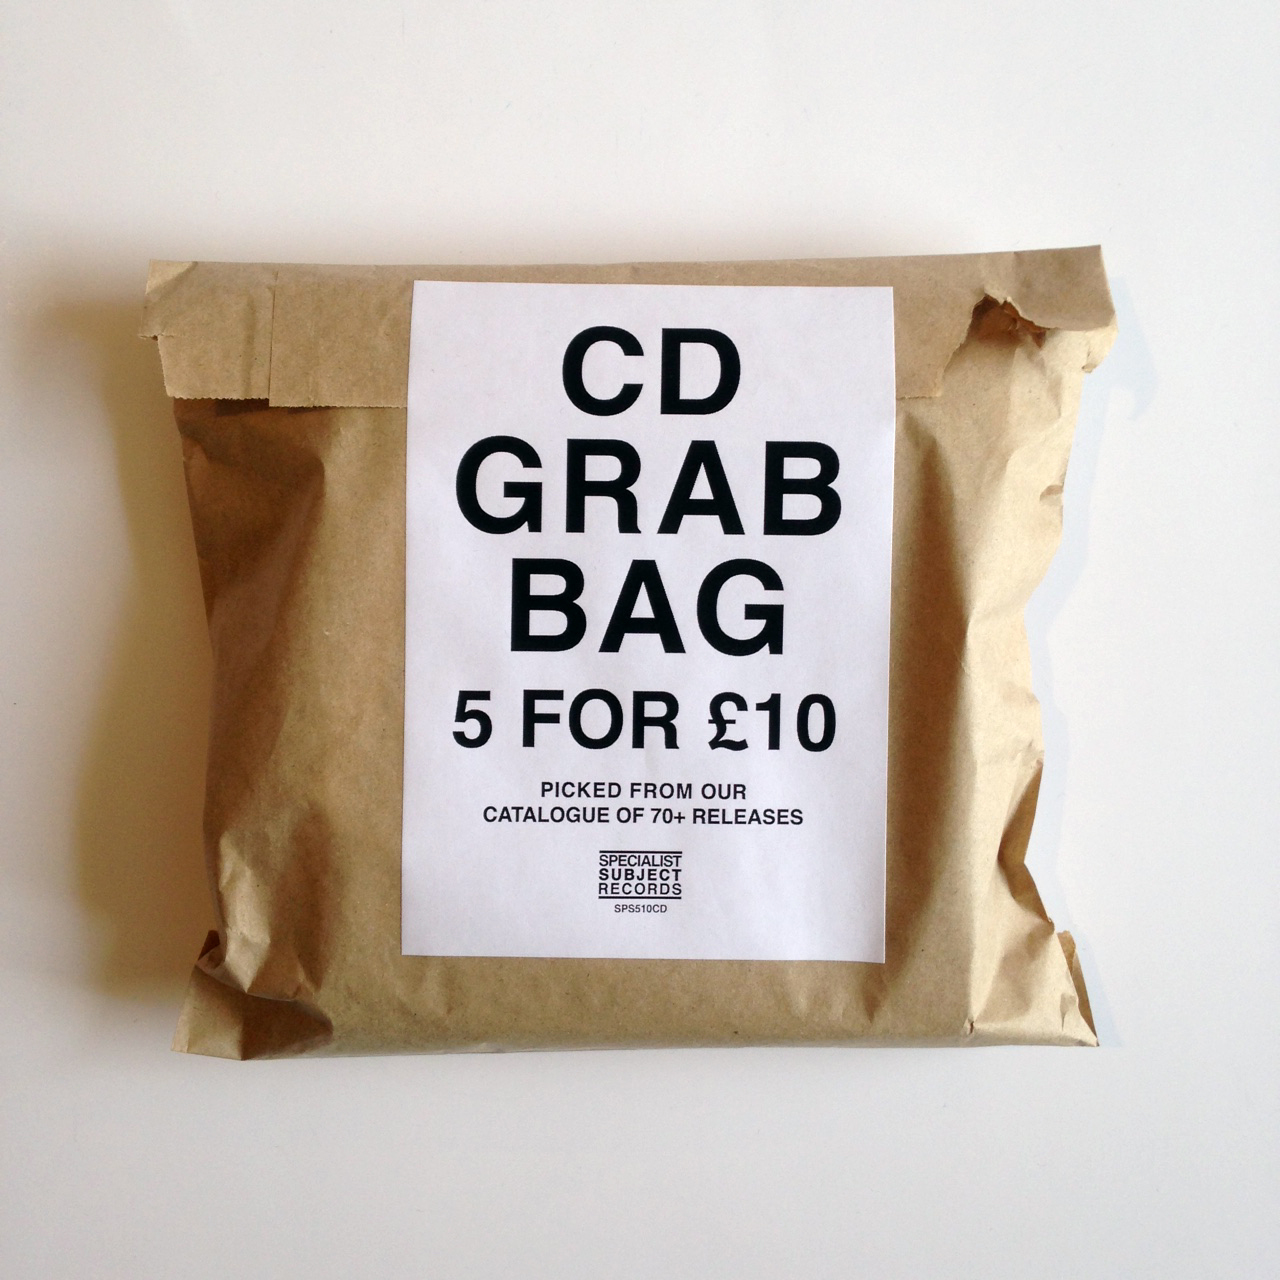 CD Grab Bag - 5 for £10